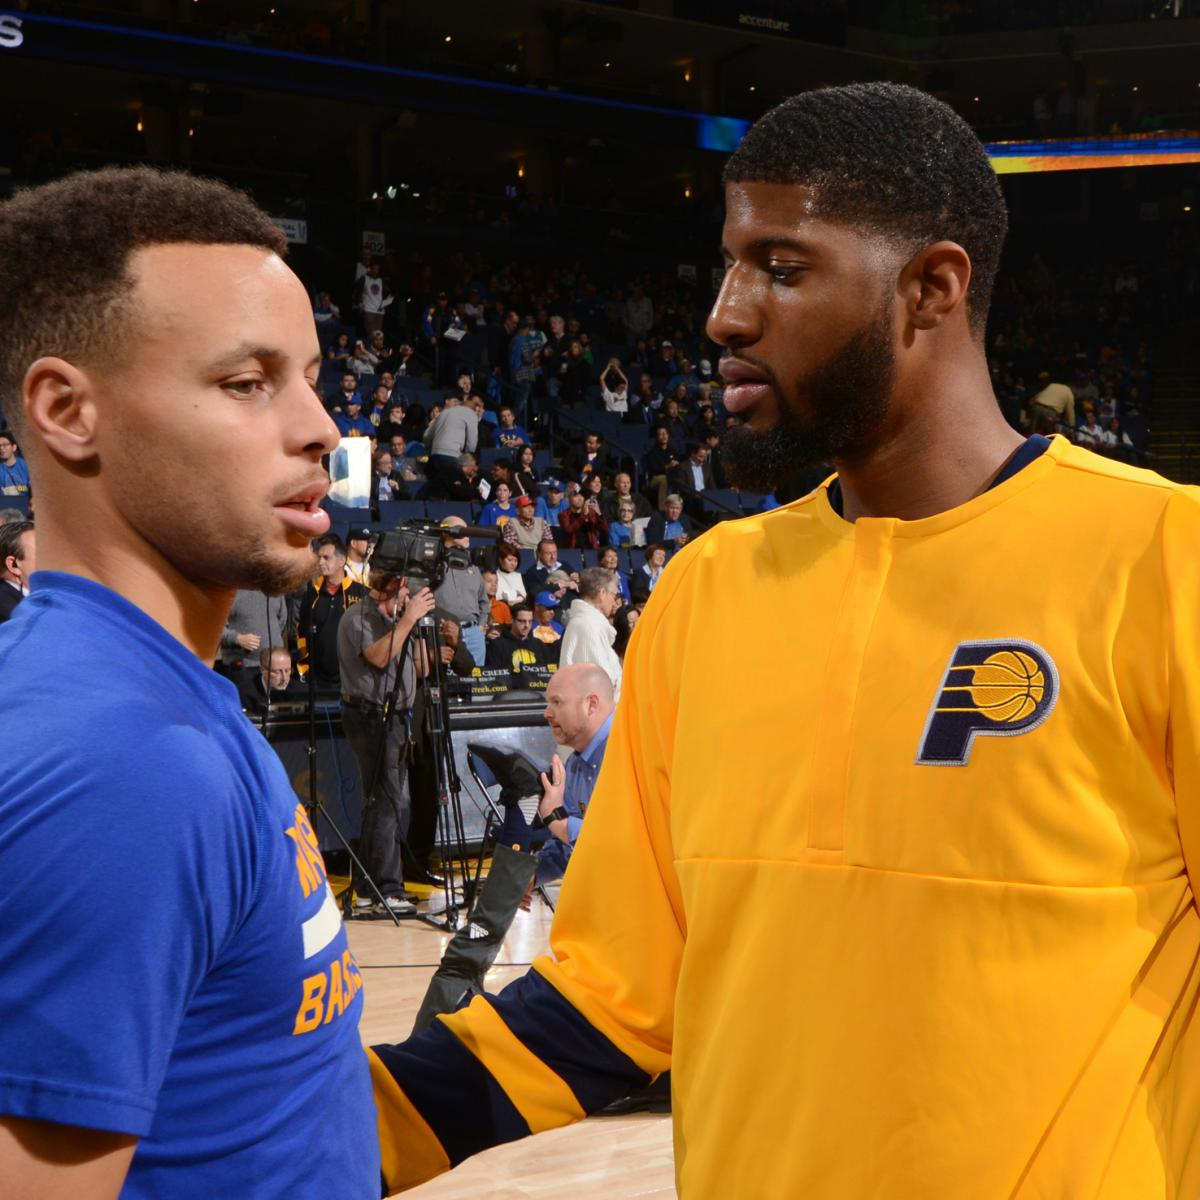 Warriors New Stadium Season Tickets: Should Golden State Warriors Join The Paul George